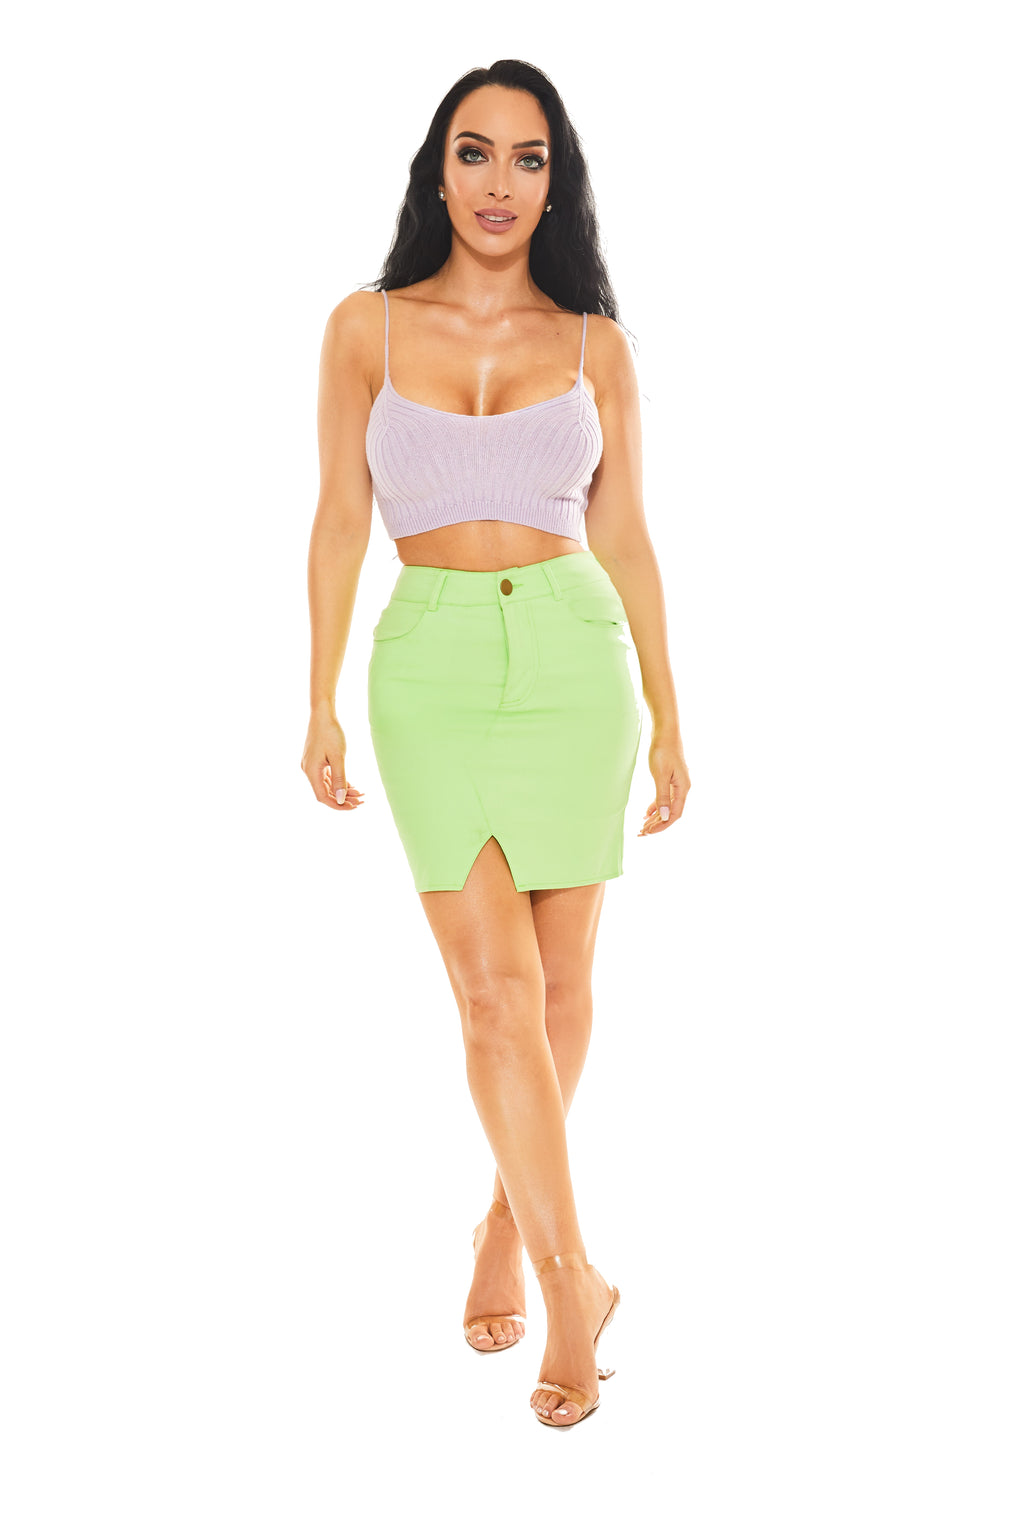 CASUAL CAMI CROP TOP - Lavender knit - www.prettyboutique.com